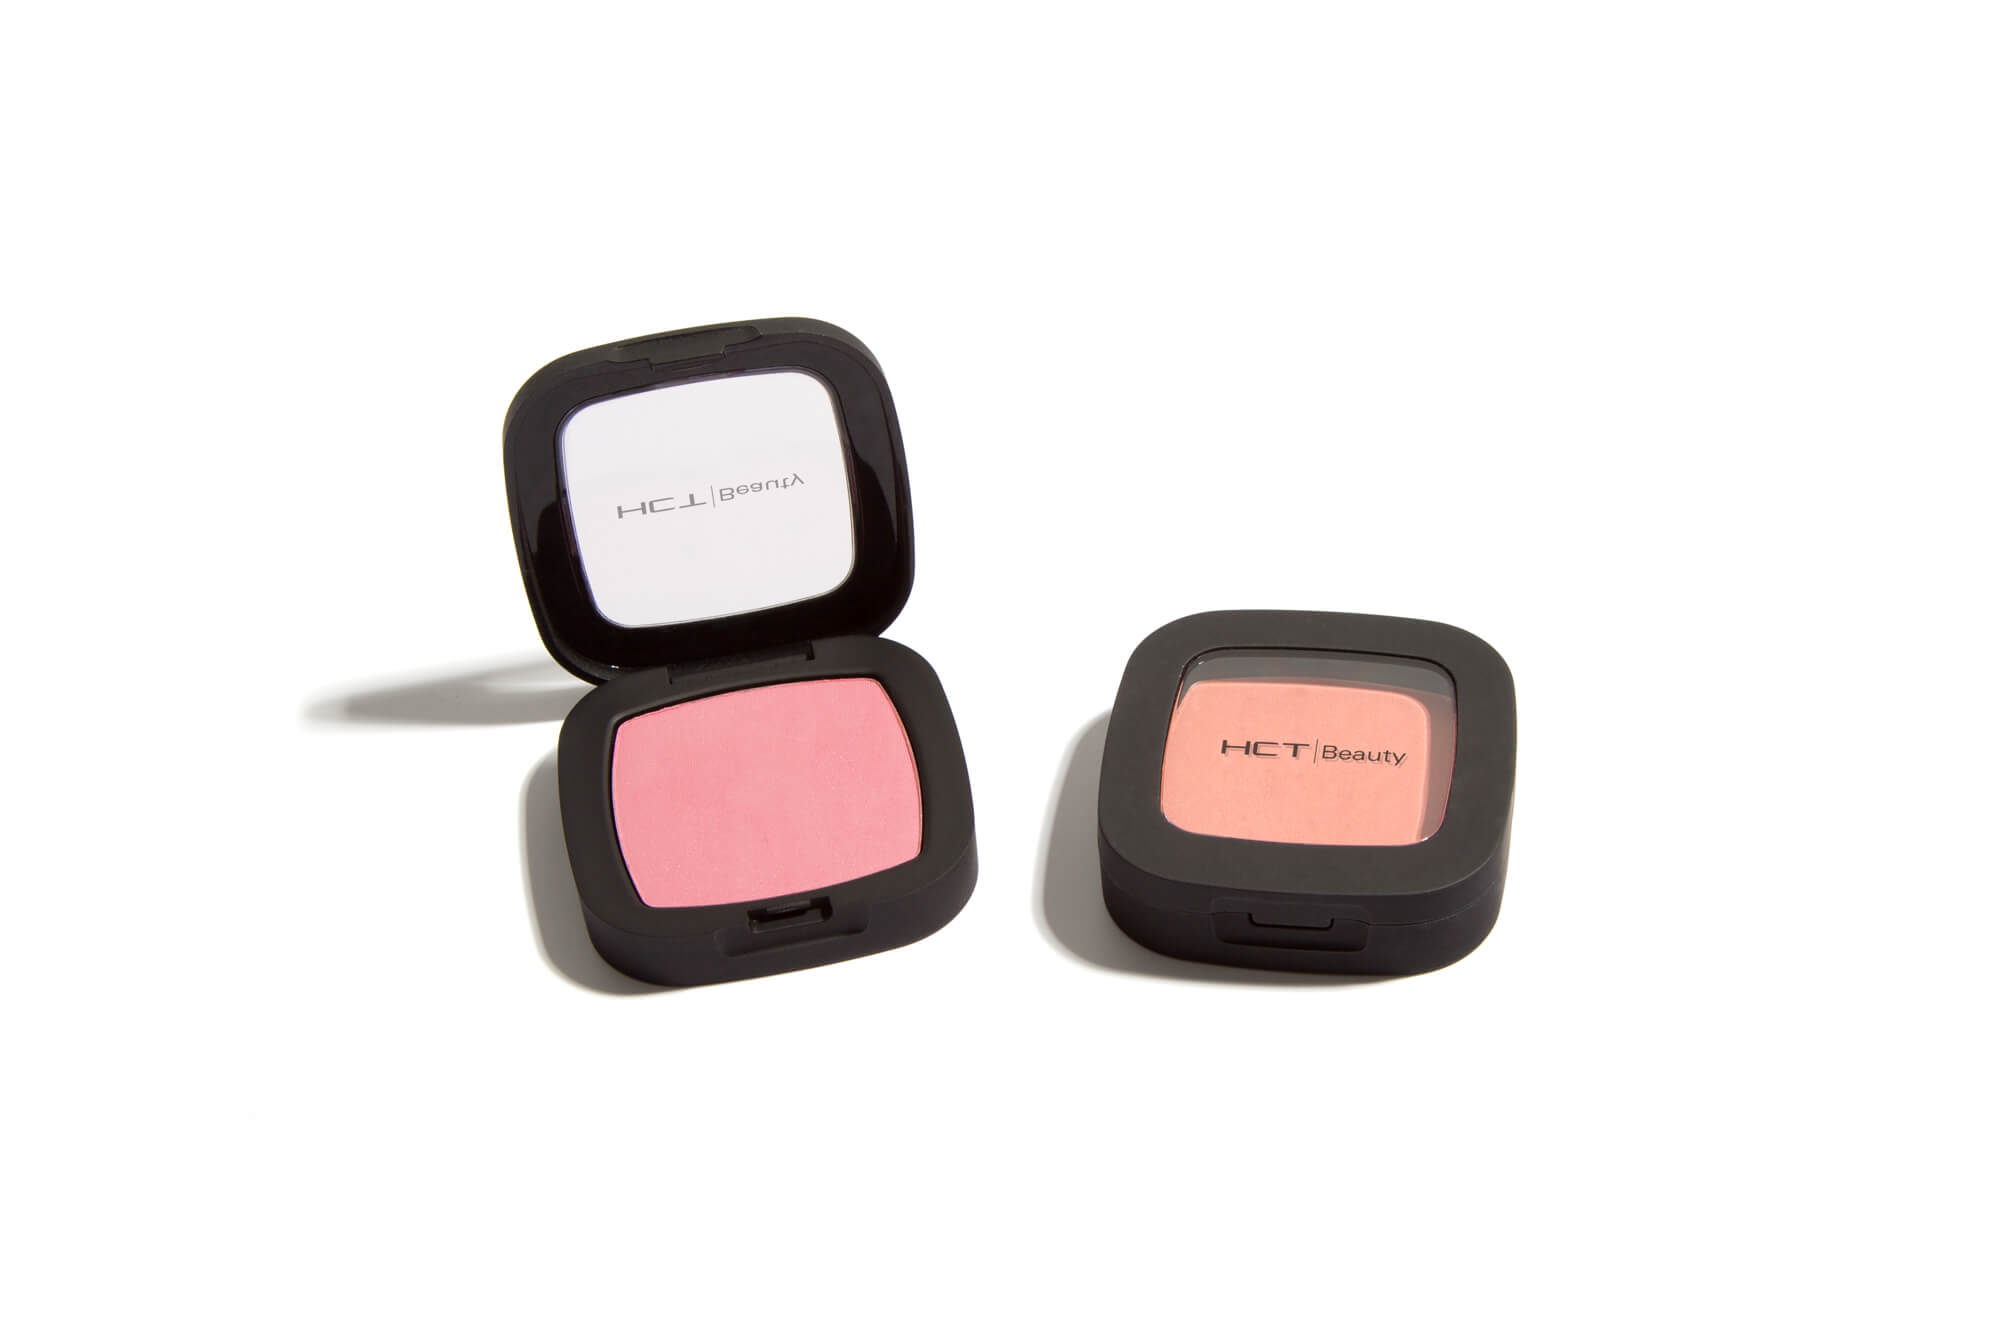 New Zen Blush